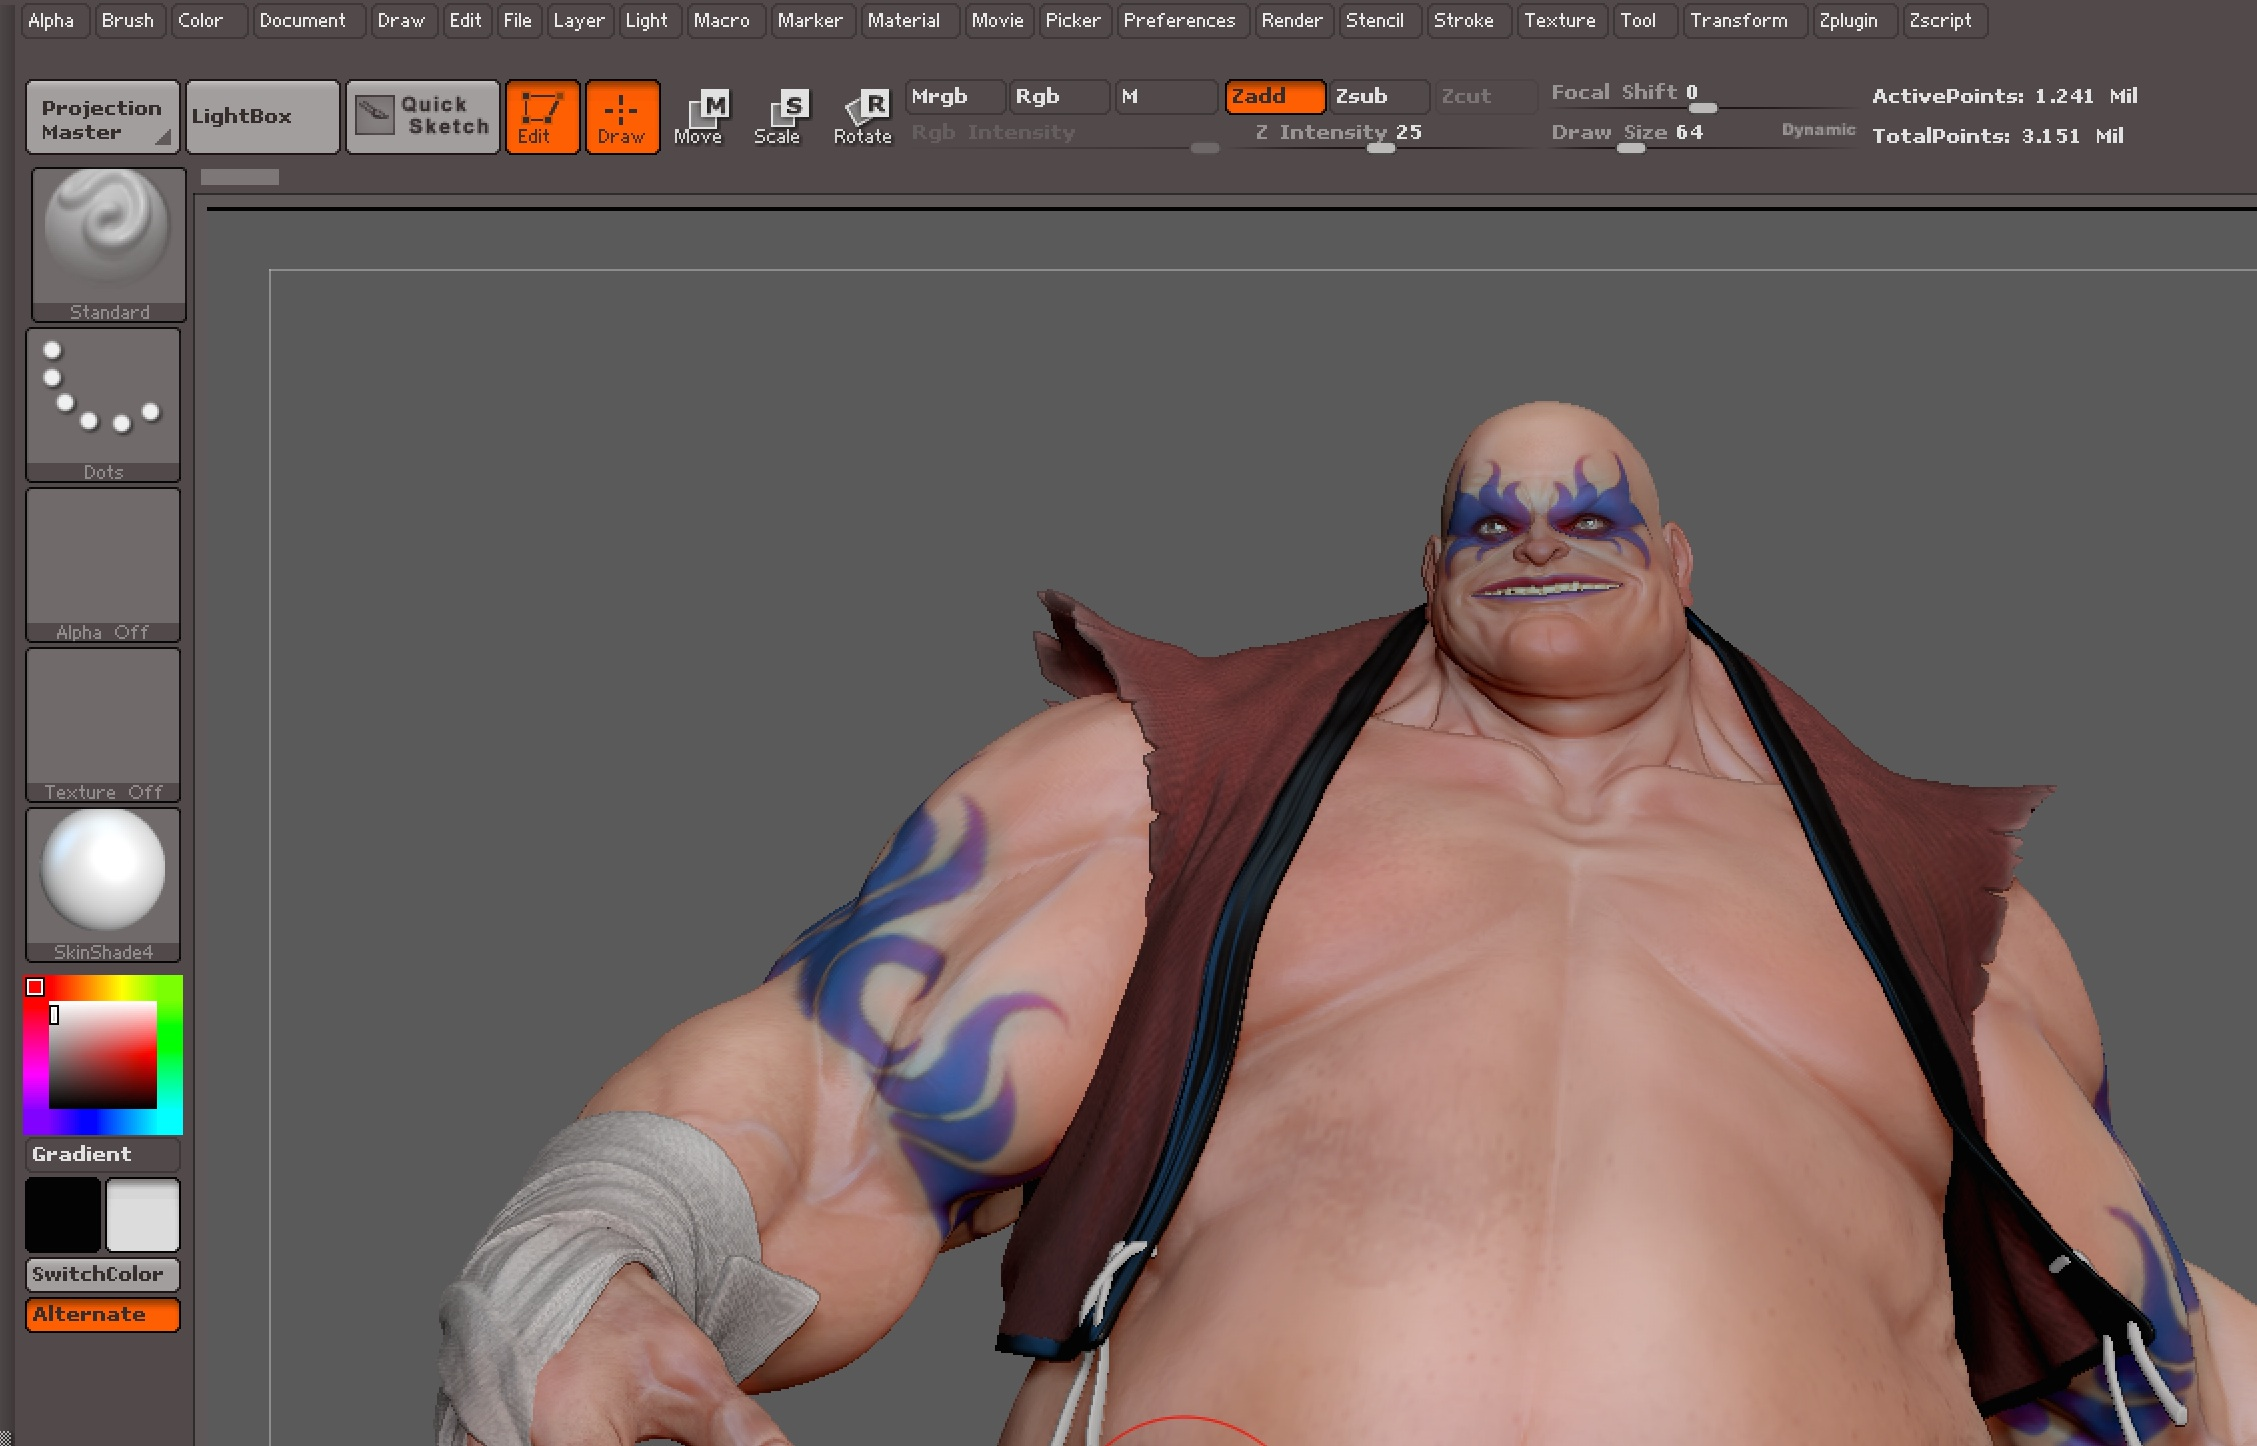 Can ZBrush Be Used for 3D Printing?